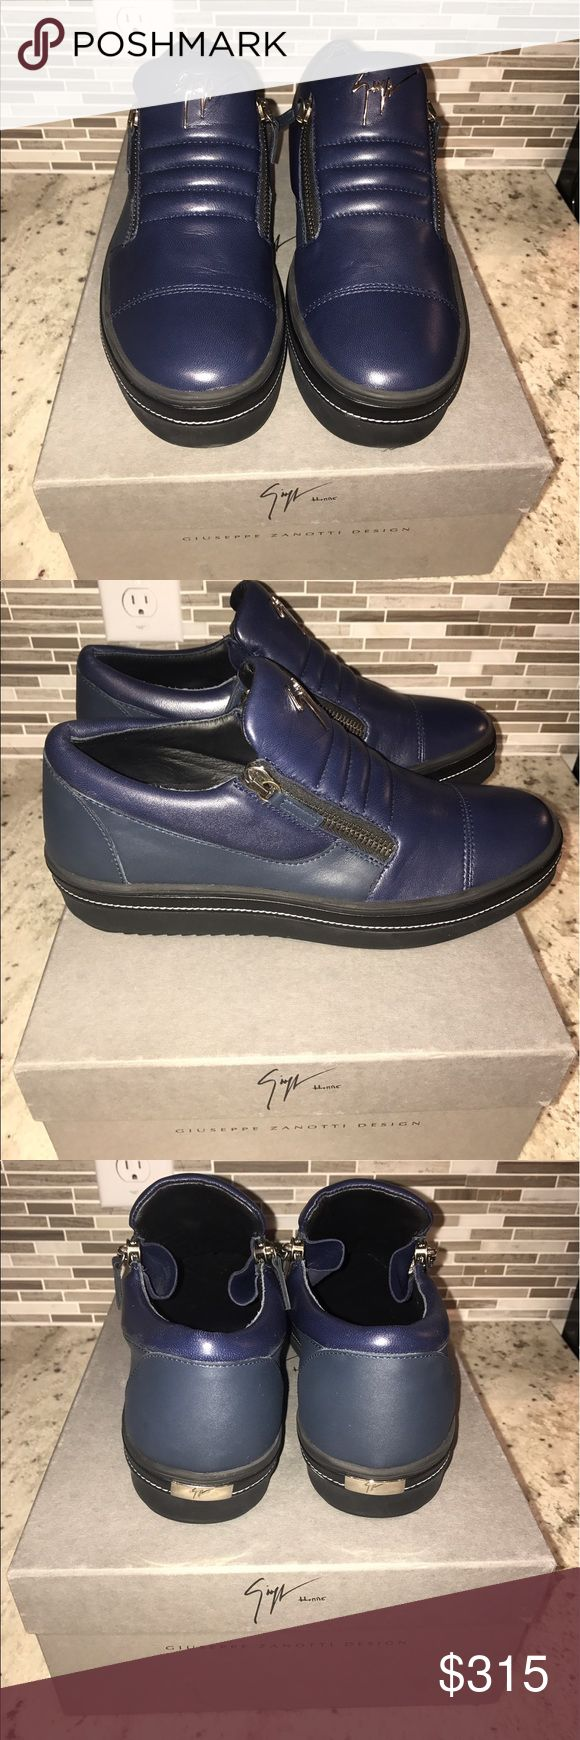 Giuseppe Zanotti Two-Toned Men's Sneaker Brand New Condition. Box and dust bag included Giuseppe Zanotti Shoes Sneakers